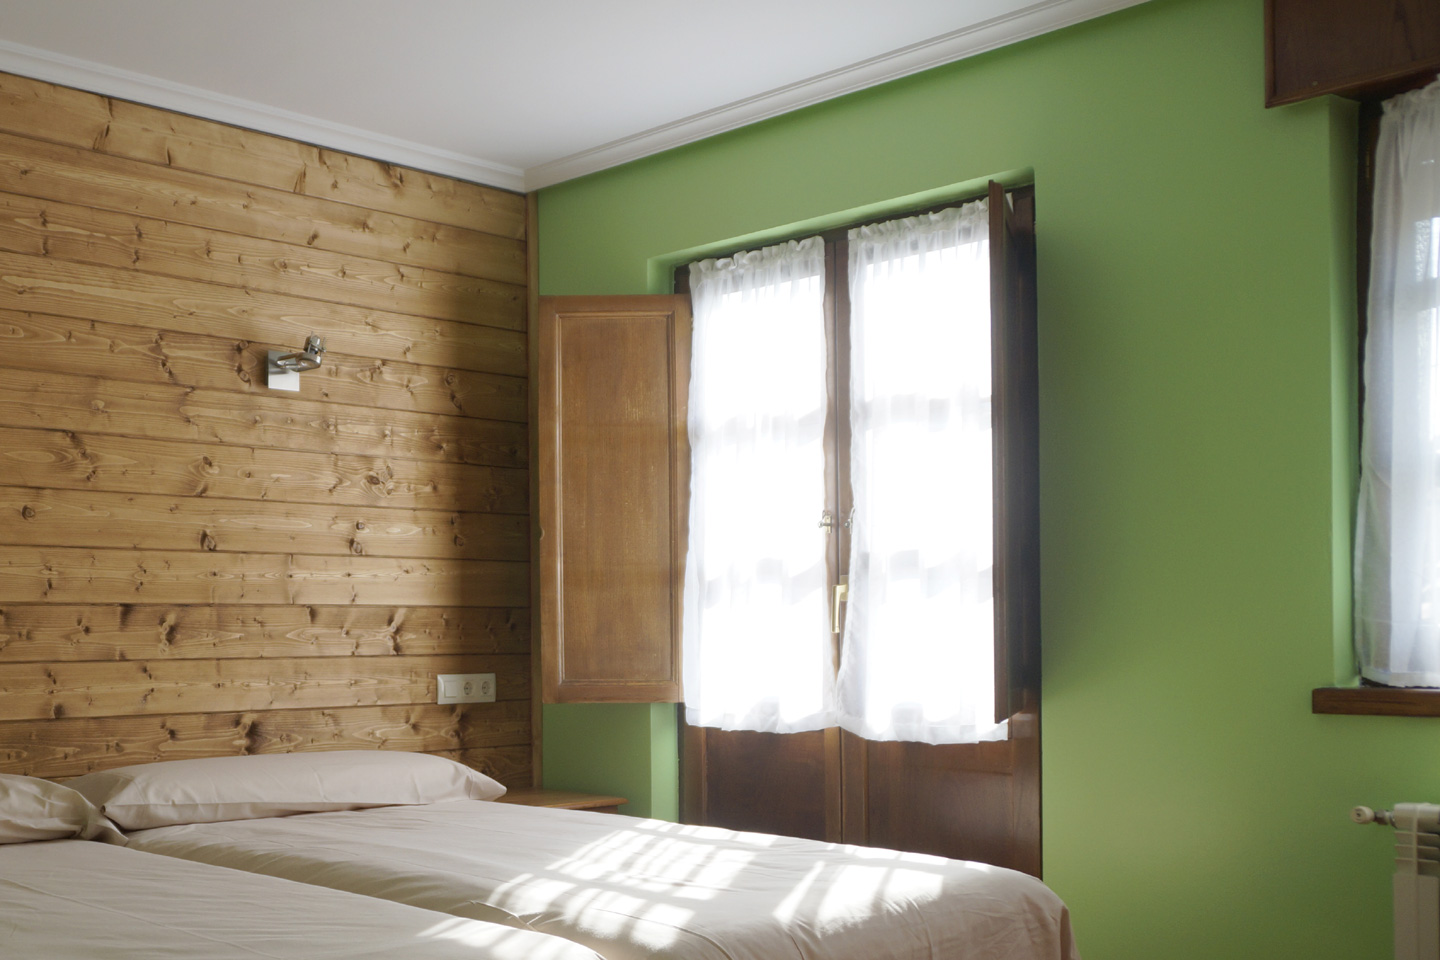 A room that combines green and wood